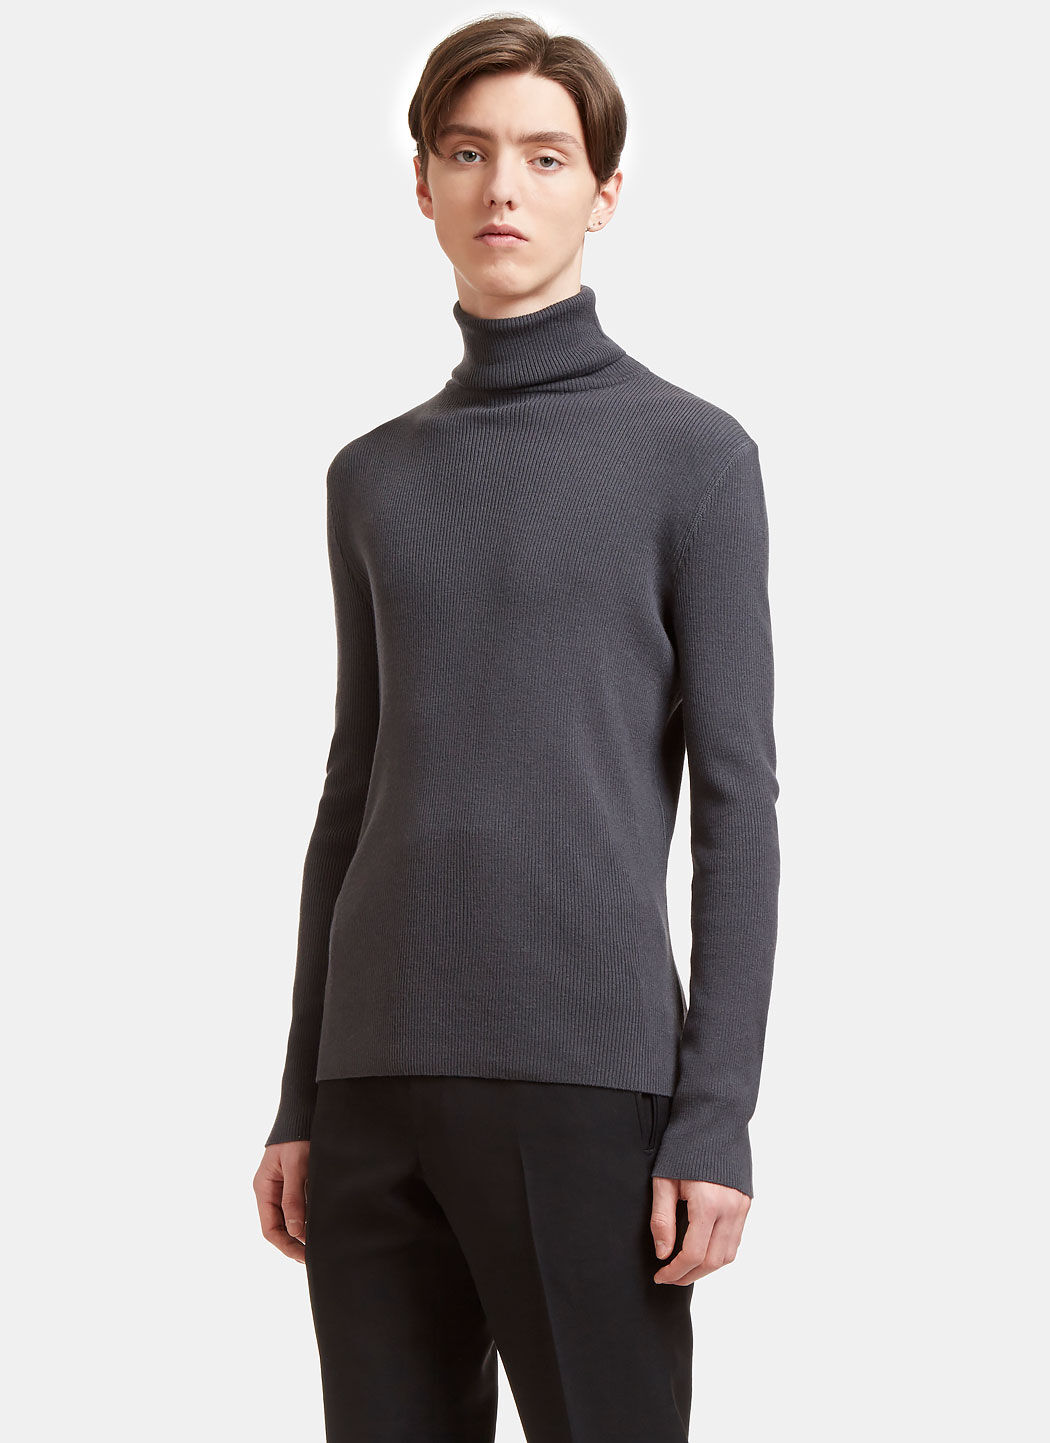 AIEZEN Men's Ribbed Polo Neck Sweater from SS15 in Grey